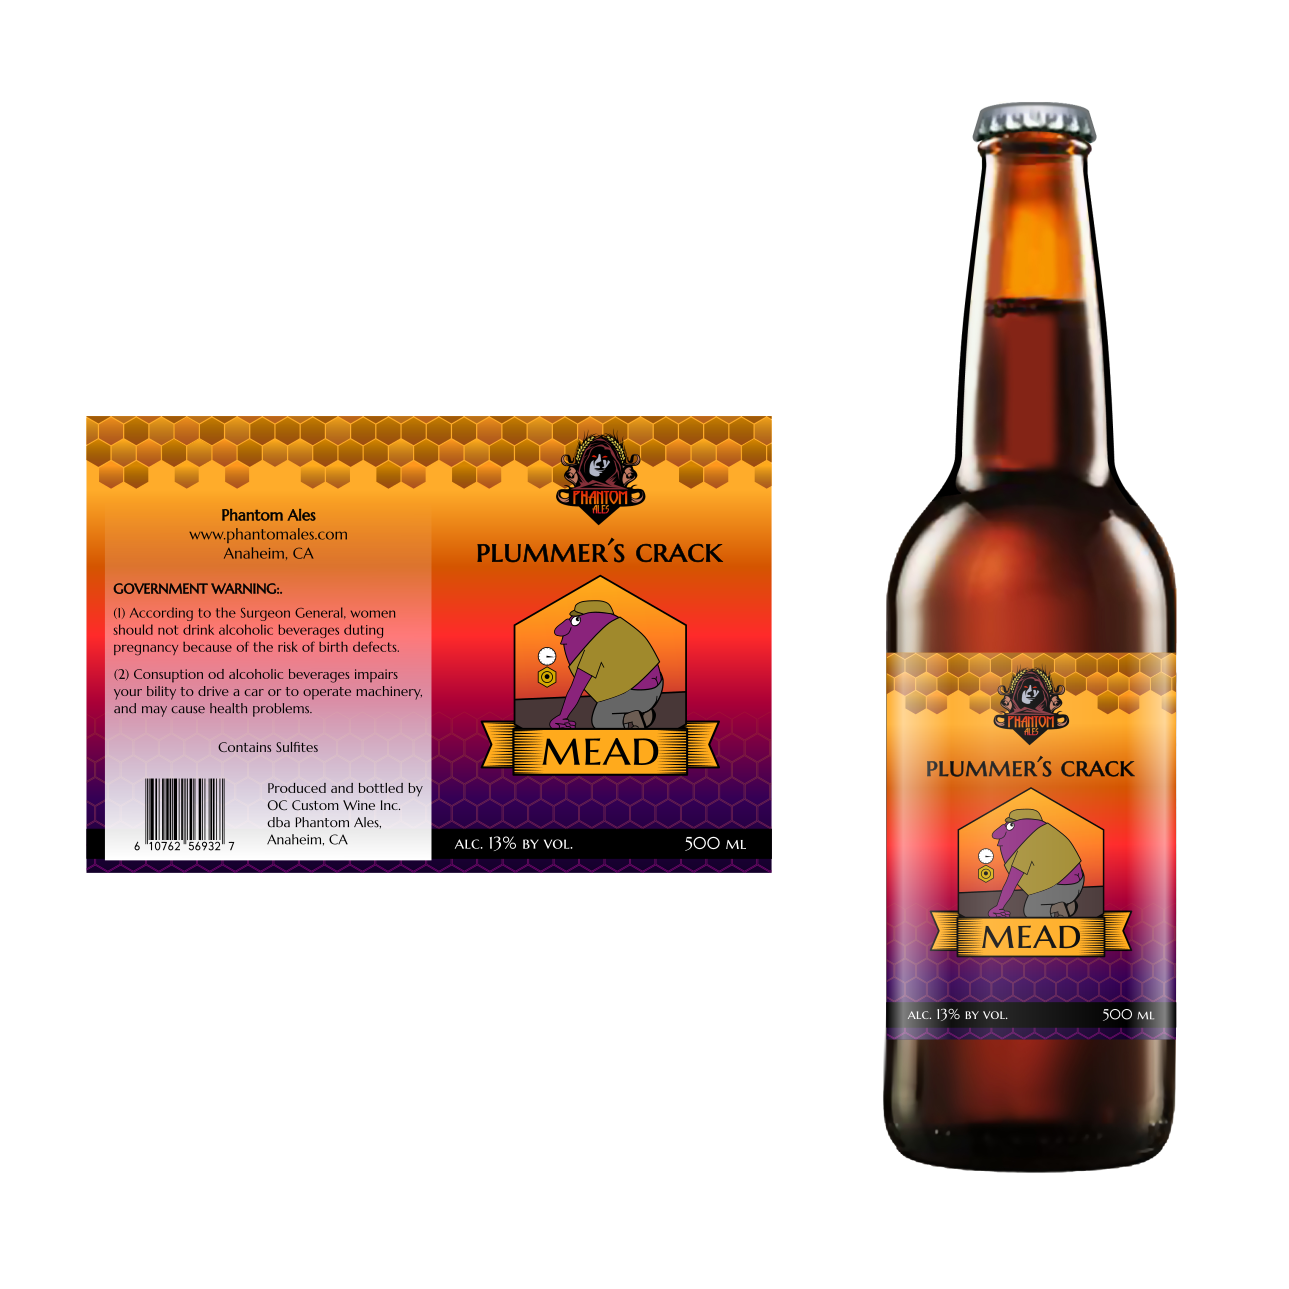 Government warning alcohol png. Playful label designs